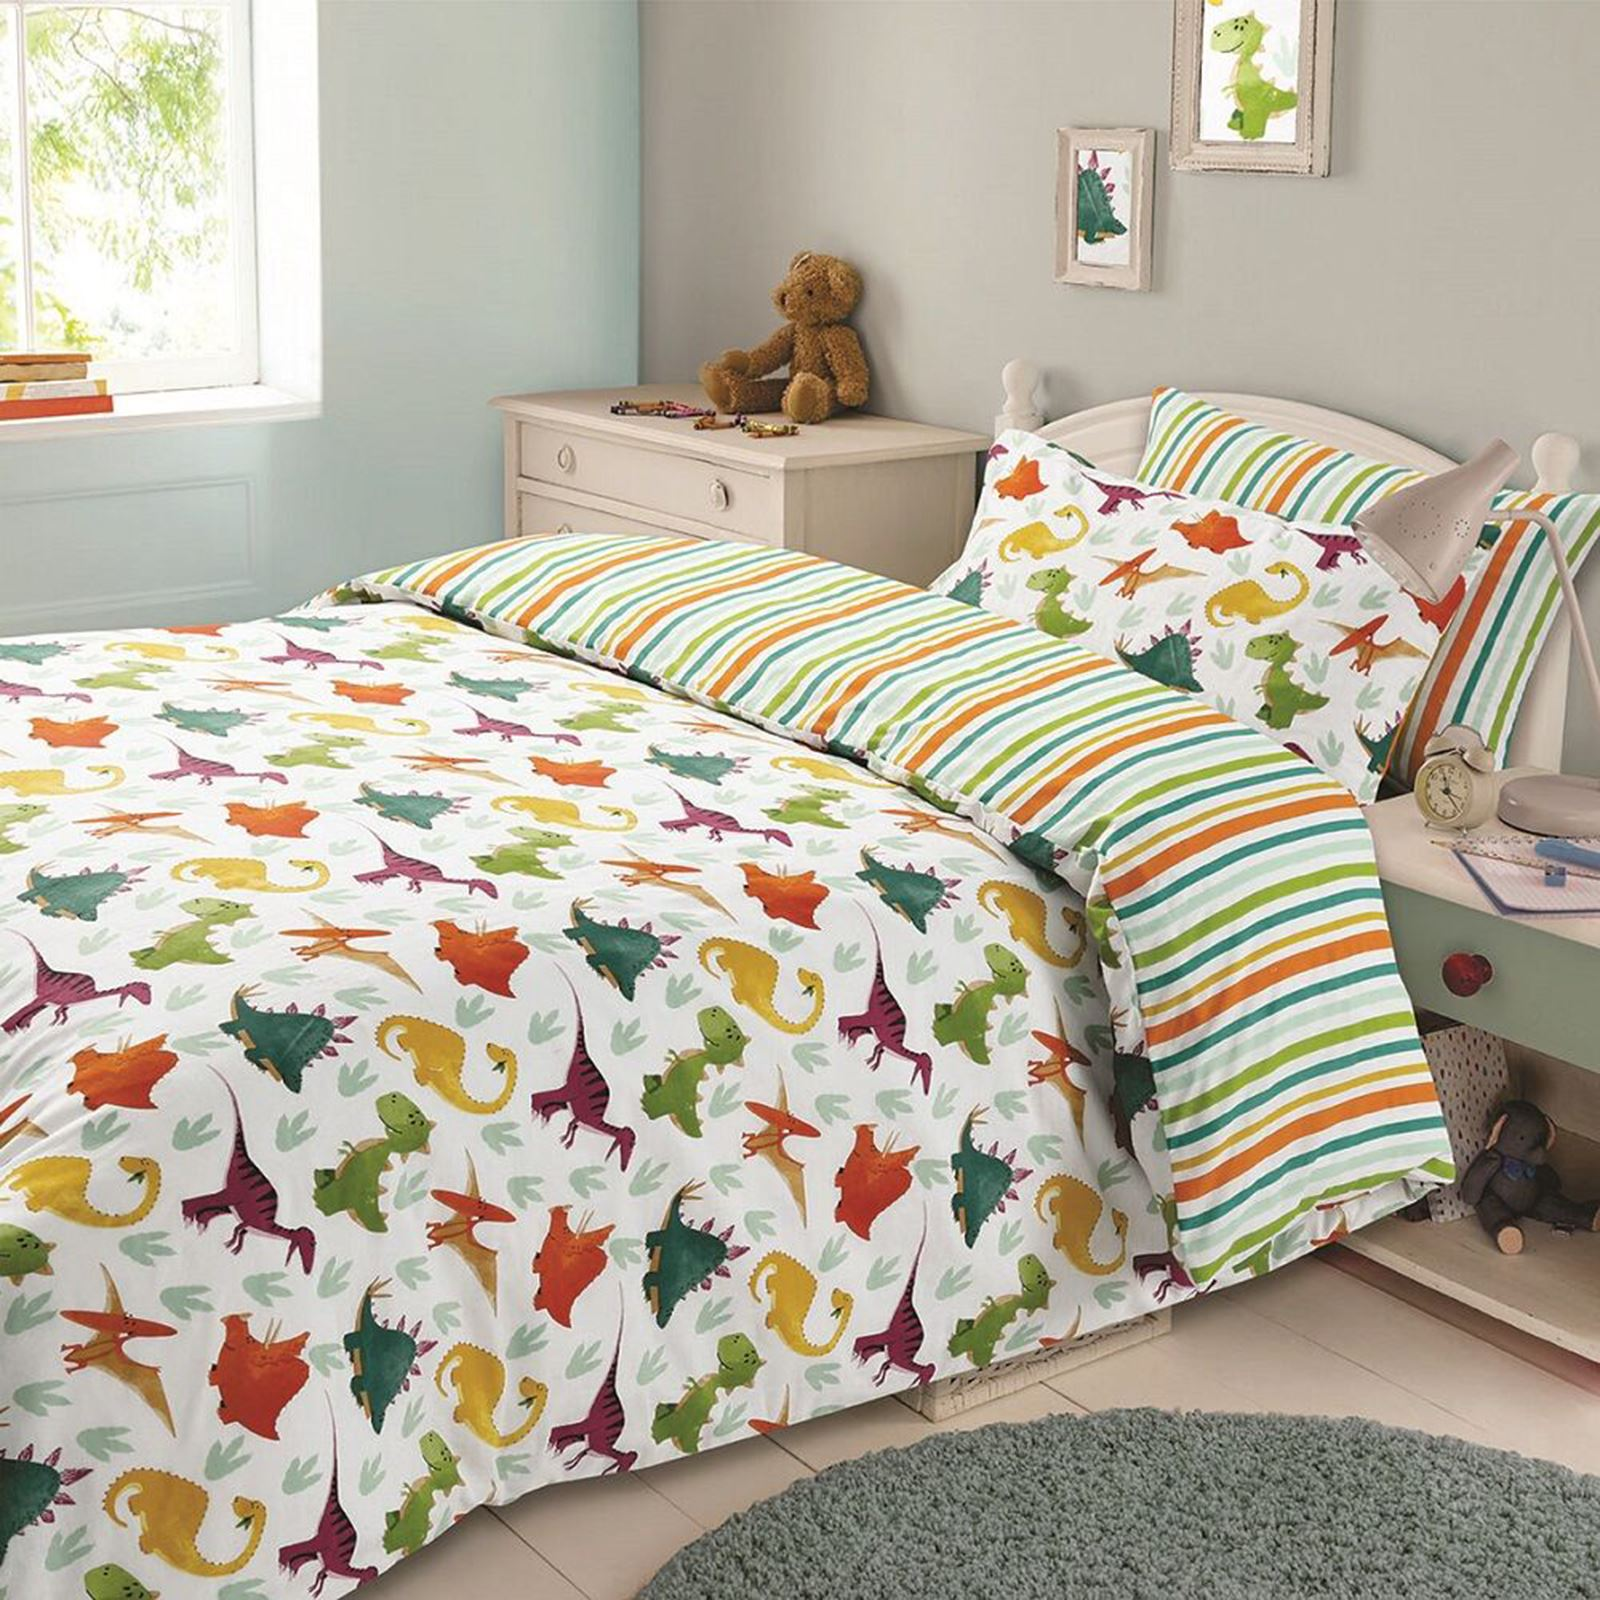 enfants gar ons housse de couette ensembles football jungle camouflage ebay. Black Bedroom Furniture Sets. Home Design Ideas